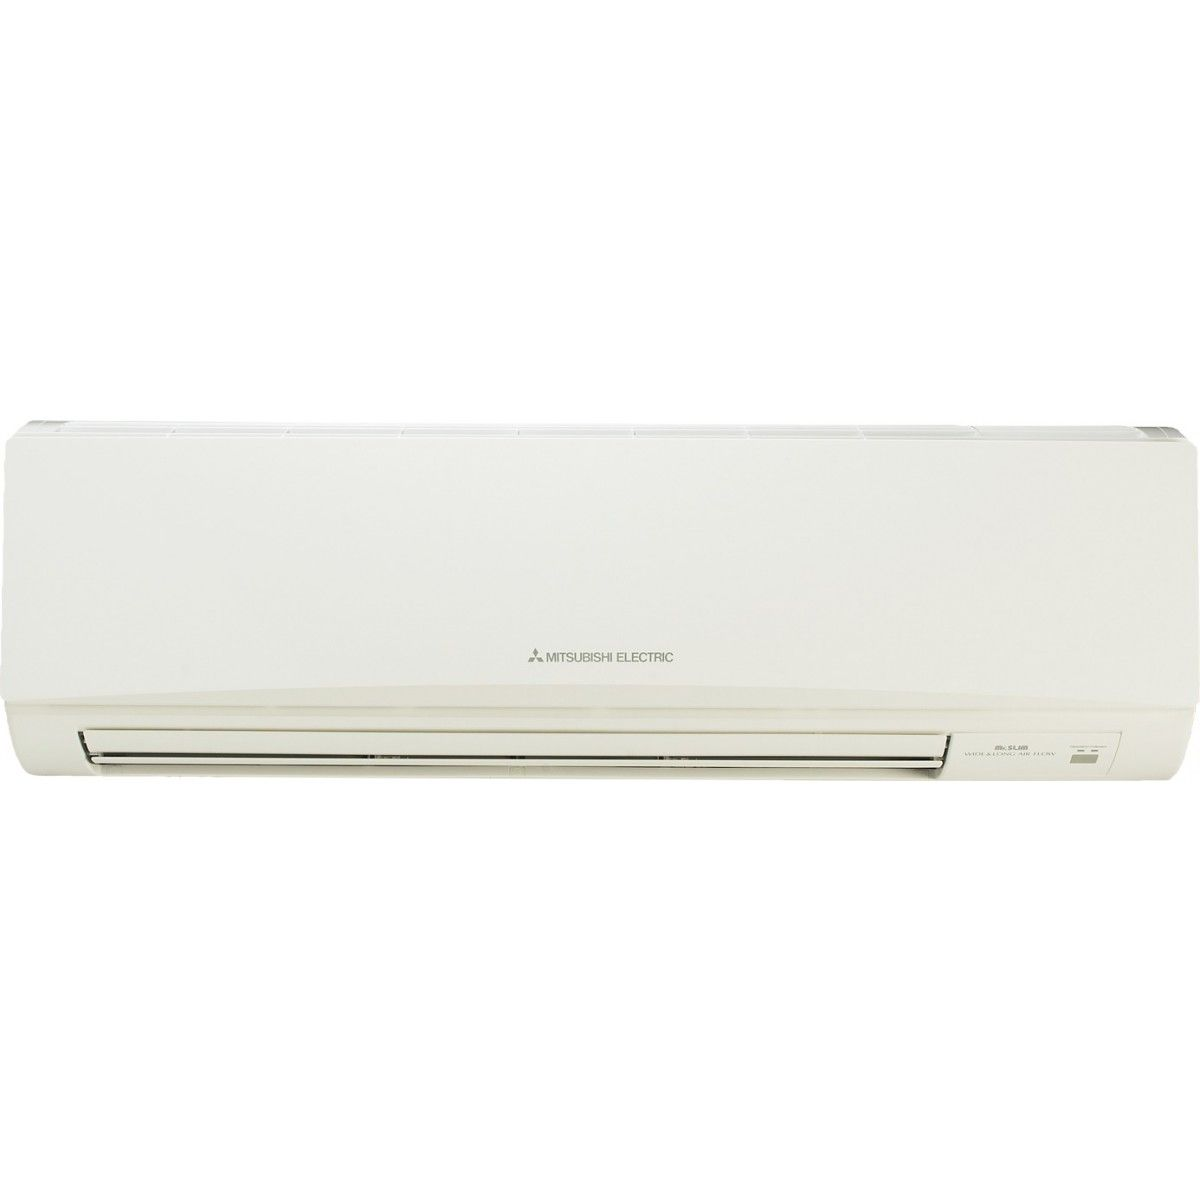 / 36K BTU Mitsubishi MSYD Wall Mounted Air Conditioner Indoor Unit #737058